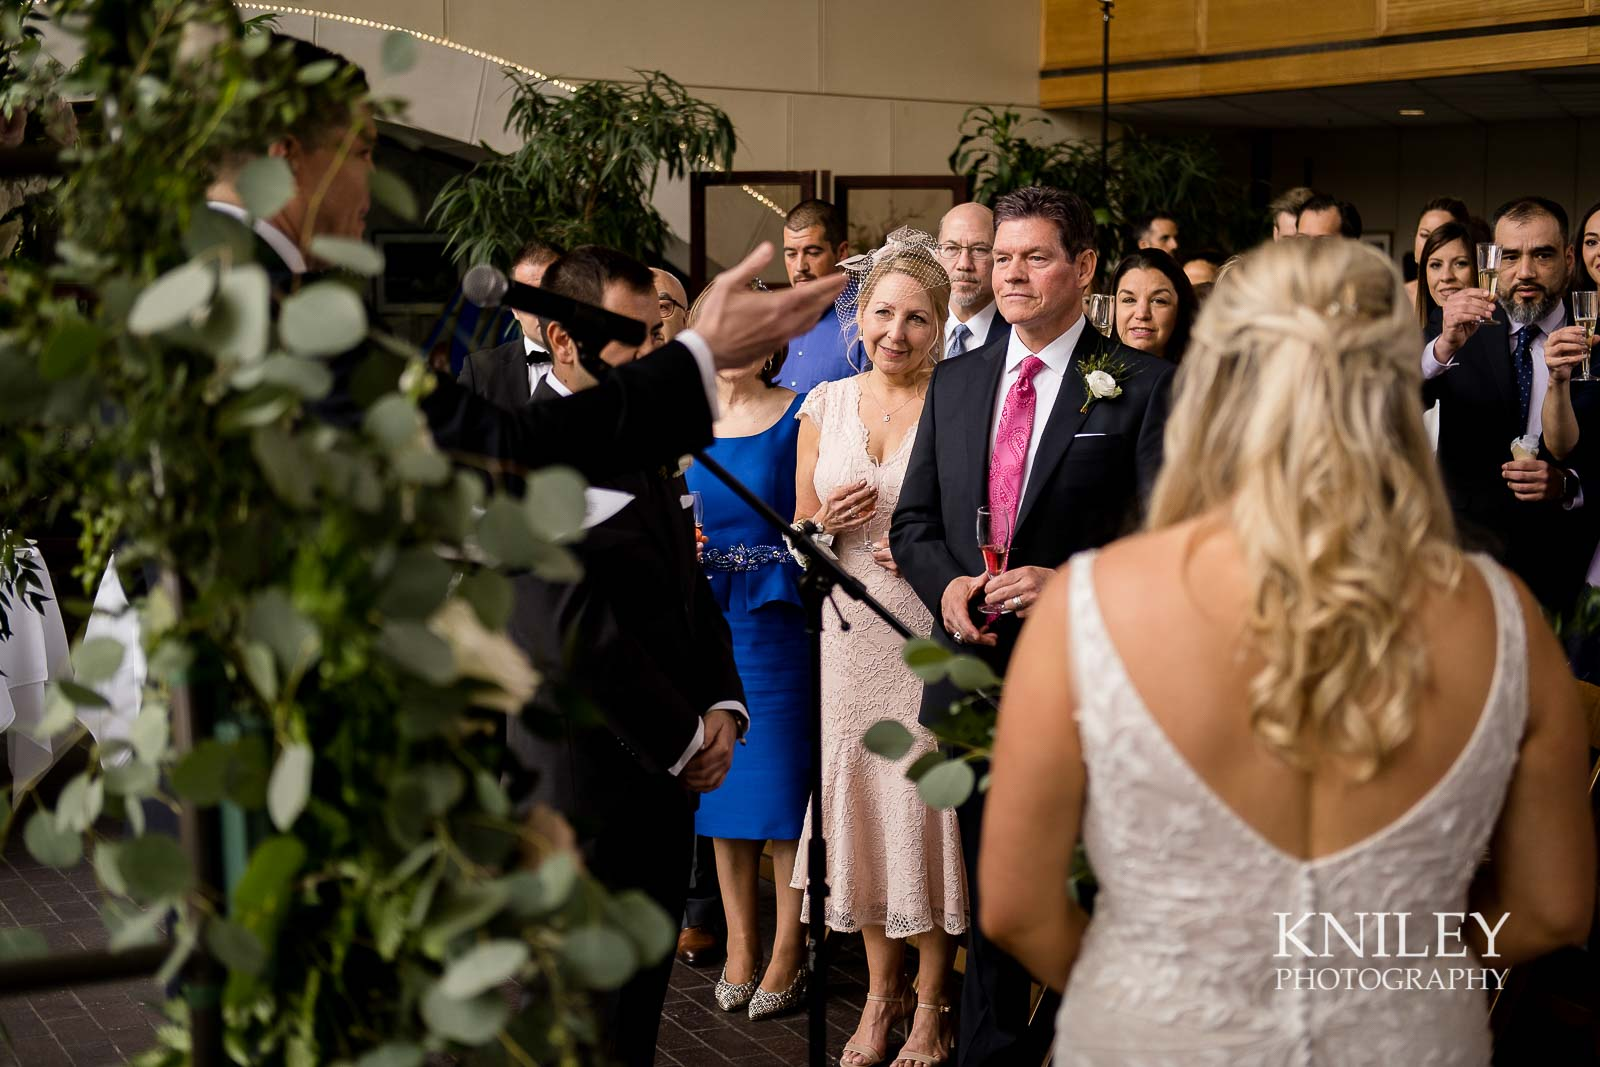 23-Max-of-Eastman-Wedding-and-Reception-Rochester-NY-Kniley-Photography.jpg